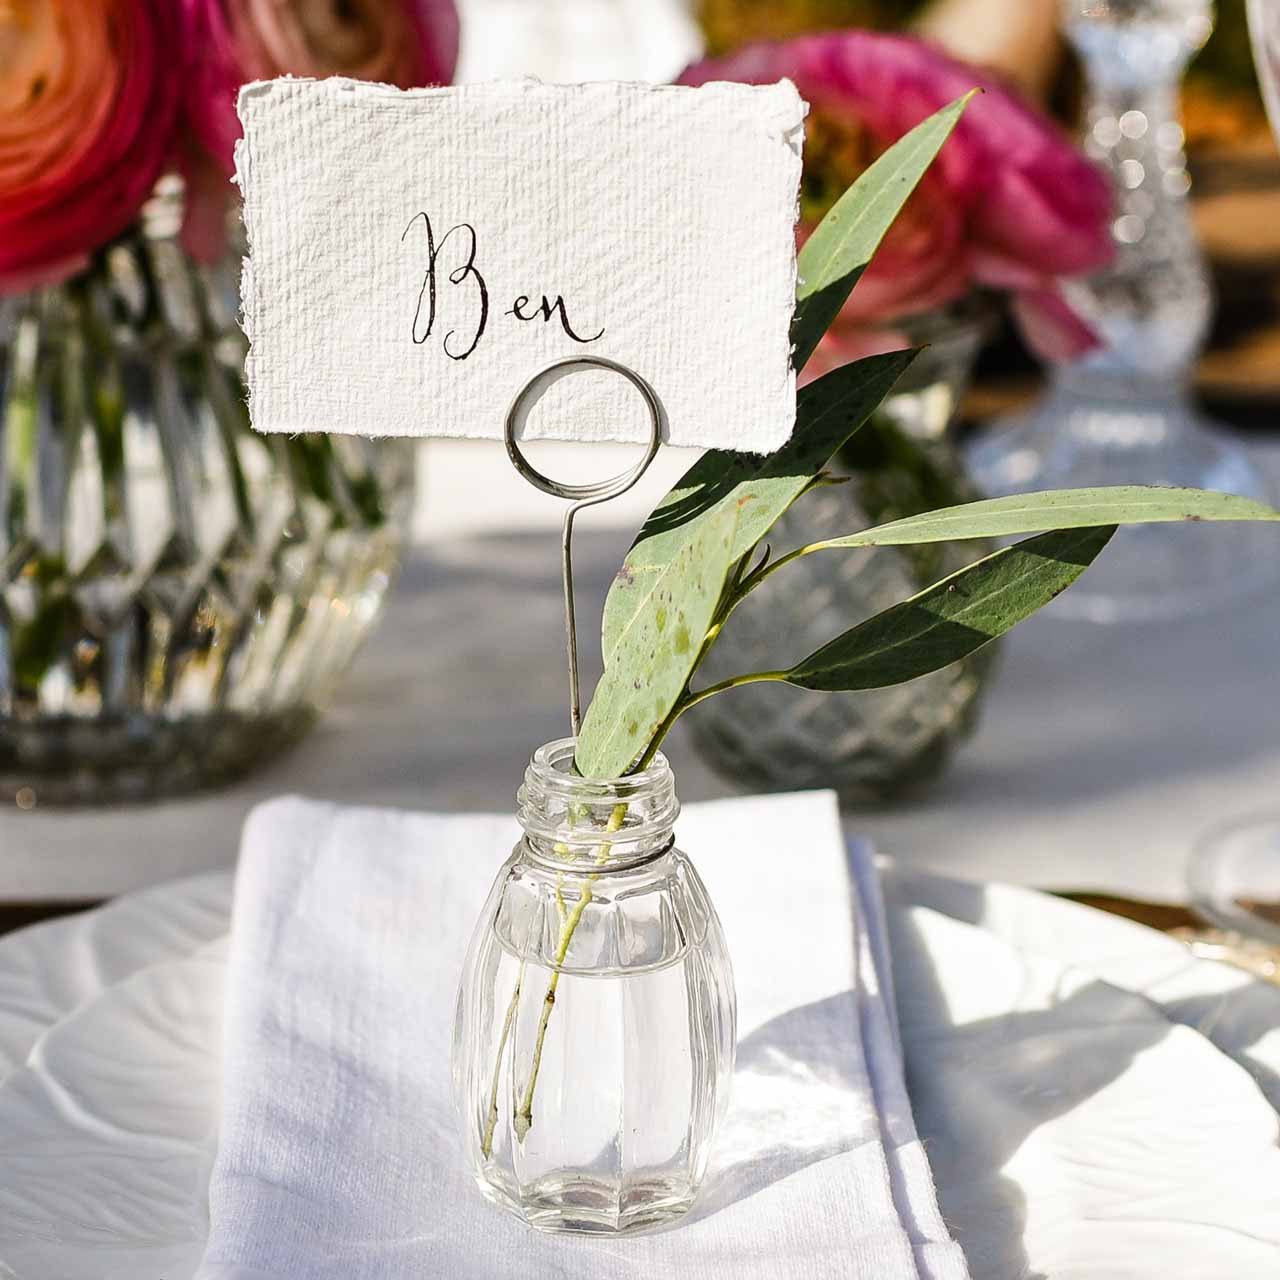 Glass bud vase name card holders set of 4 the wedding of my dreams glass bud vase place card holders available from the wedding of my dreams reviewsmspy